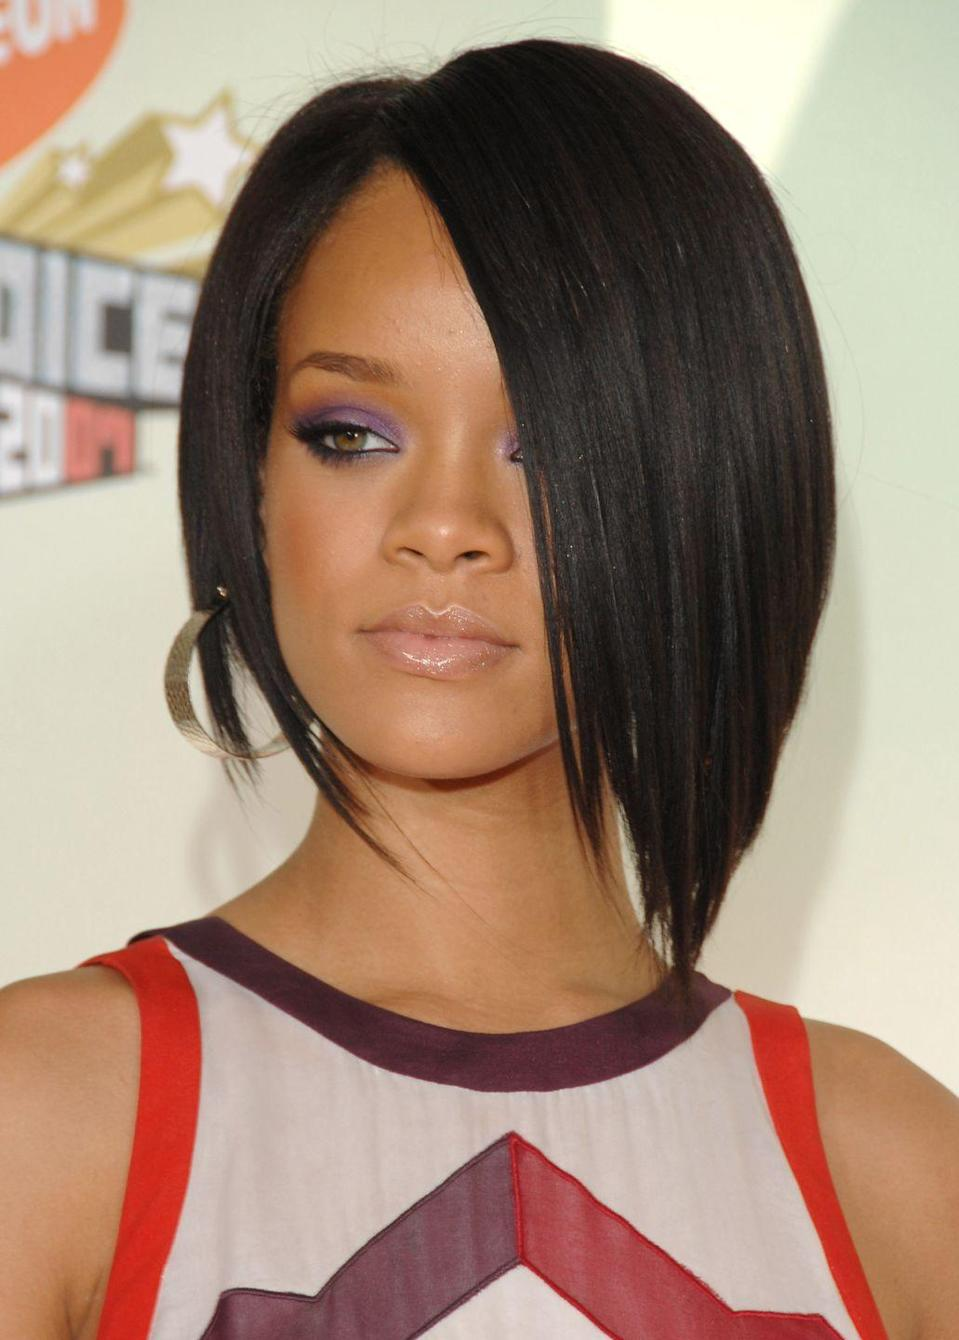 <p><strong>Rihanna</strong>'s iconic angled bob prompted millions of women to head to the salon for her cool asymmetrical style. It's still a great option if you want a sexy cut that can be styled several different ways.</p>